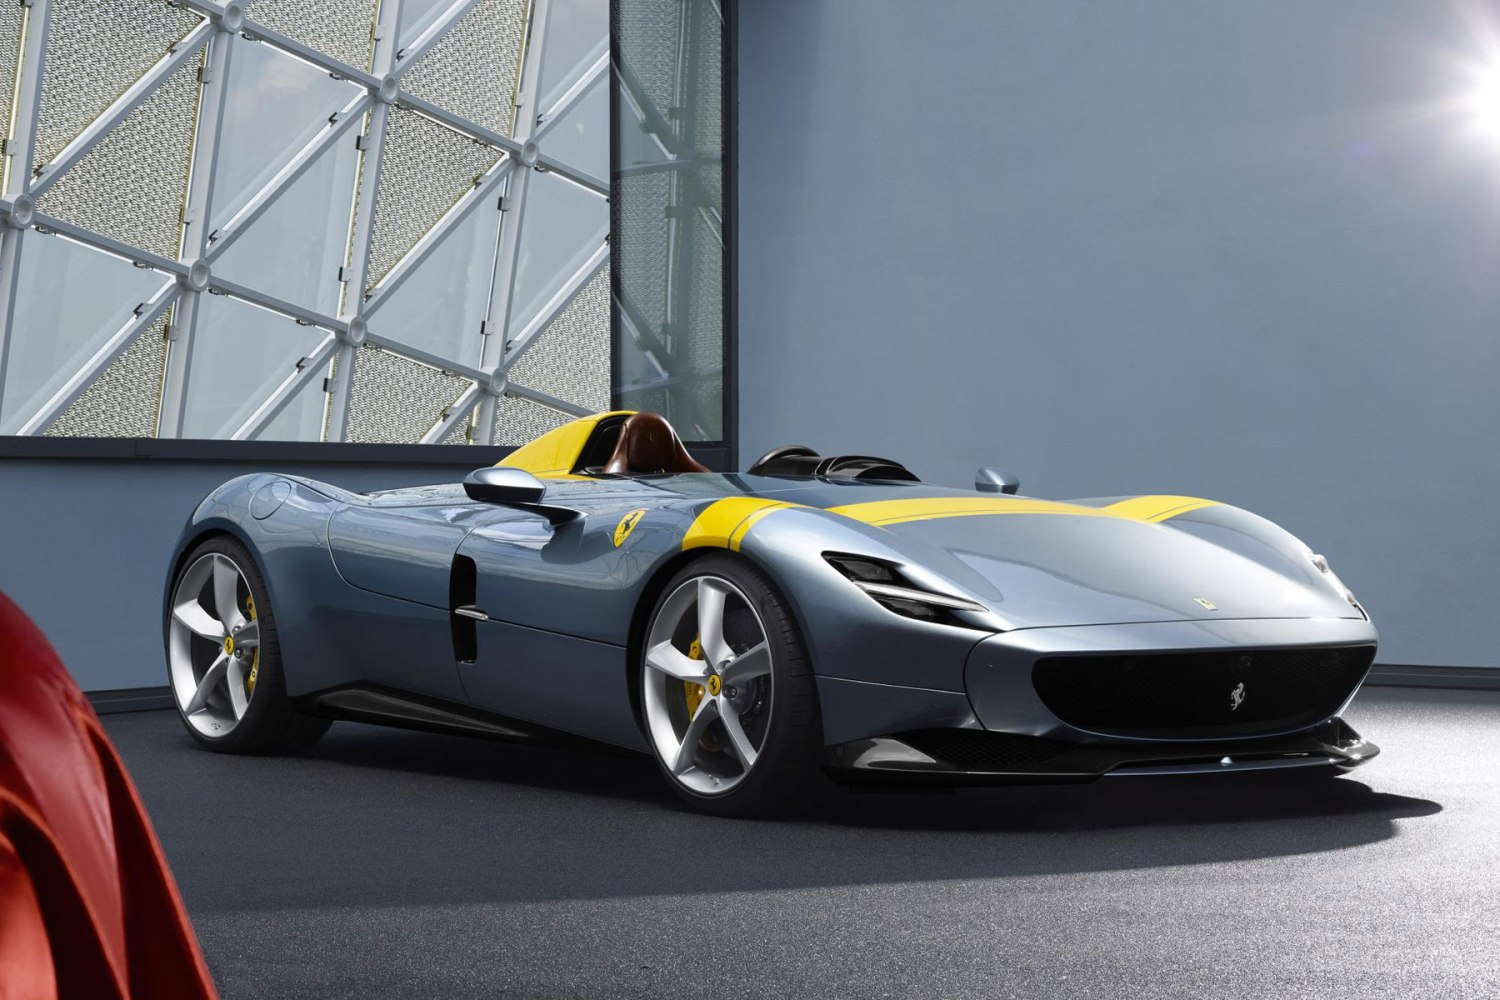 Ferrari Monza SP1/SP2 – 2.9 seconds